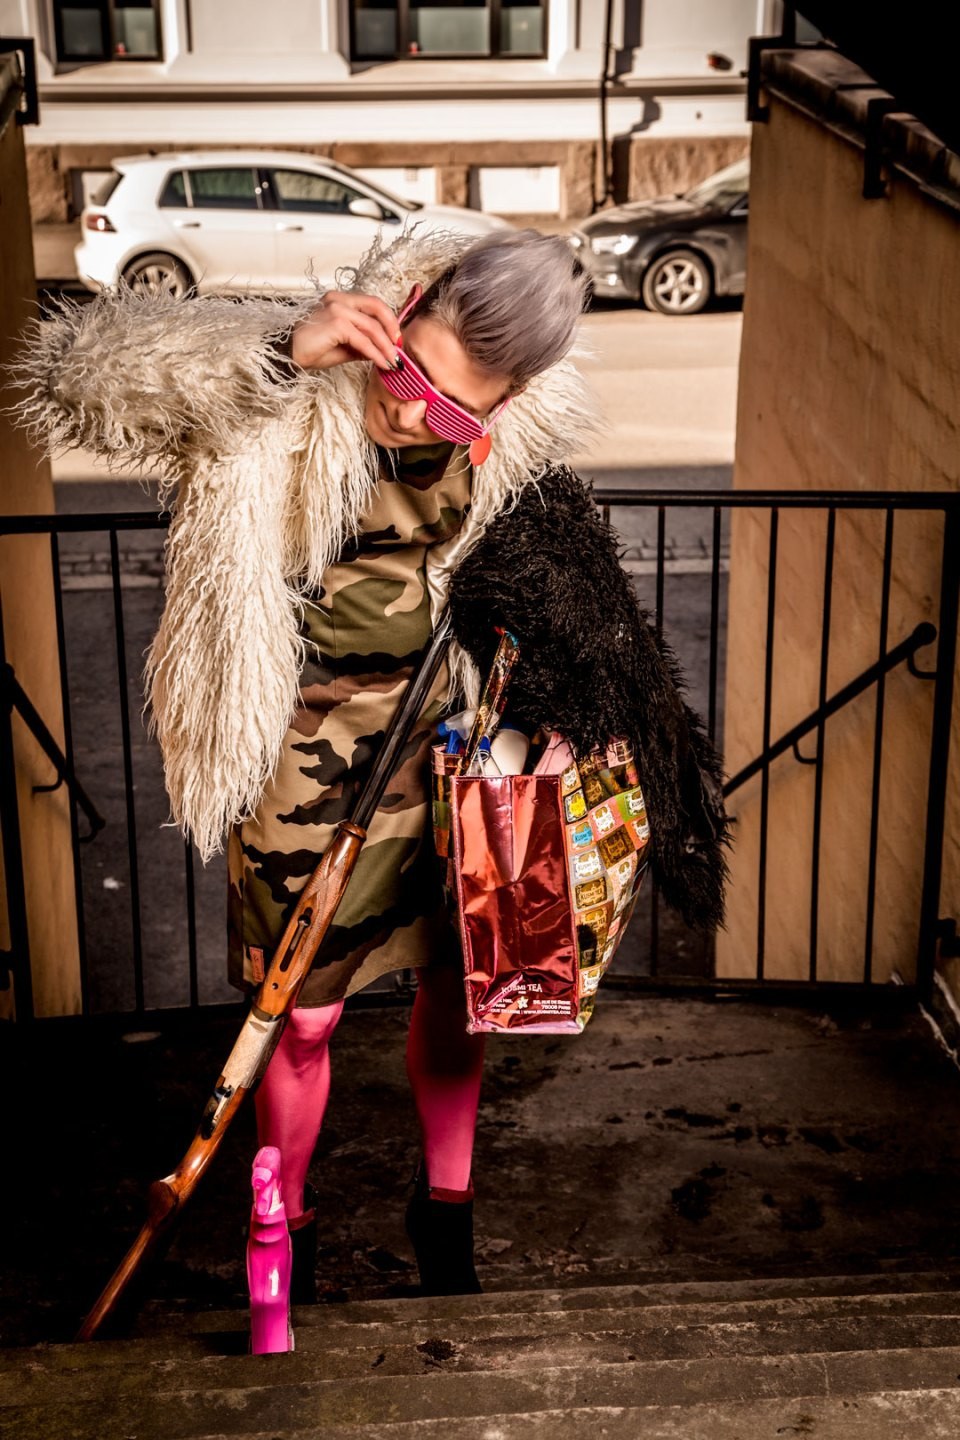 The Fashion Bandit Benedikte St.Pierre is done with cleaning her shotgun